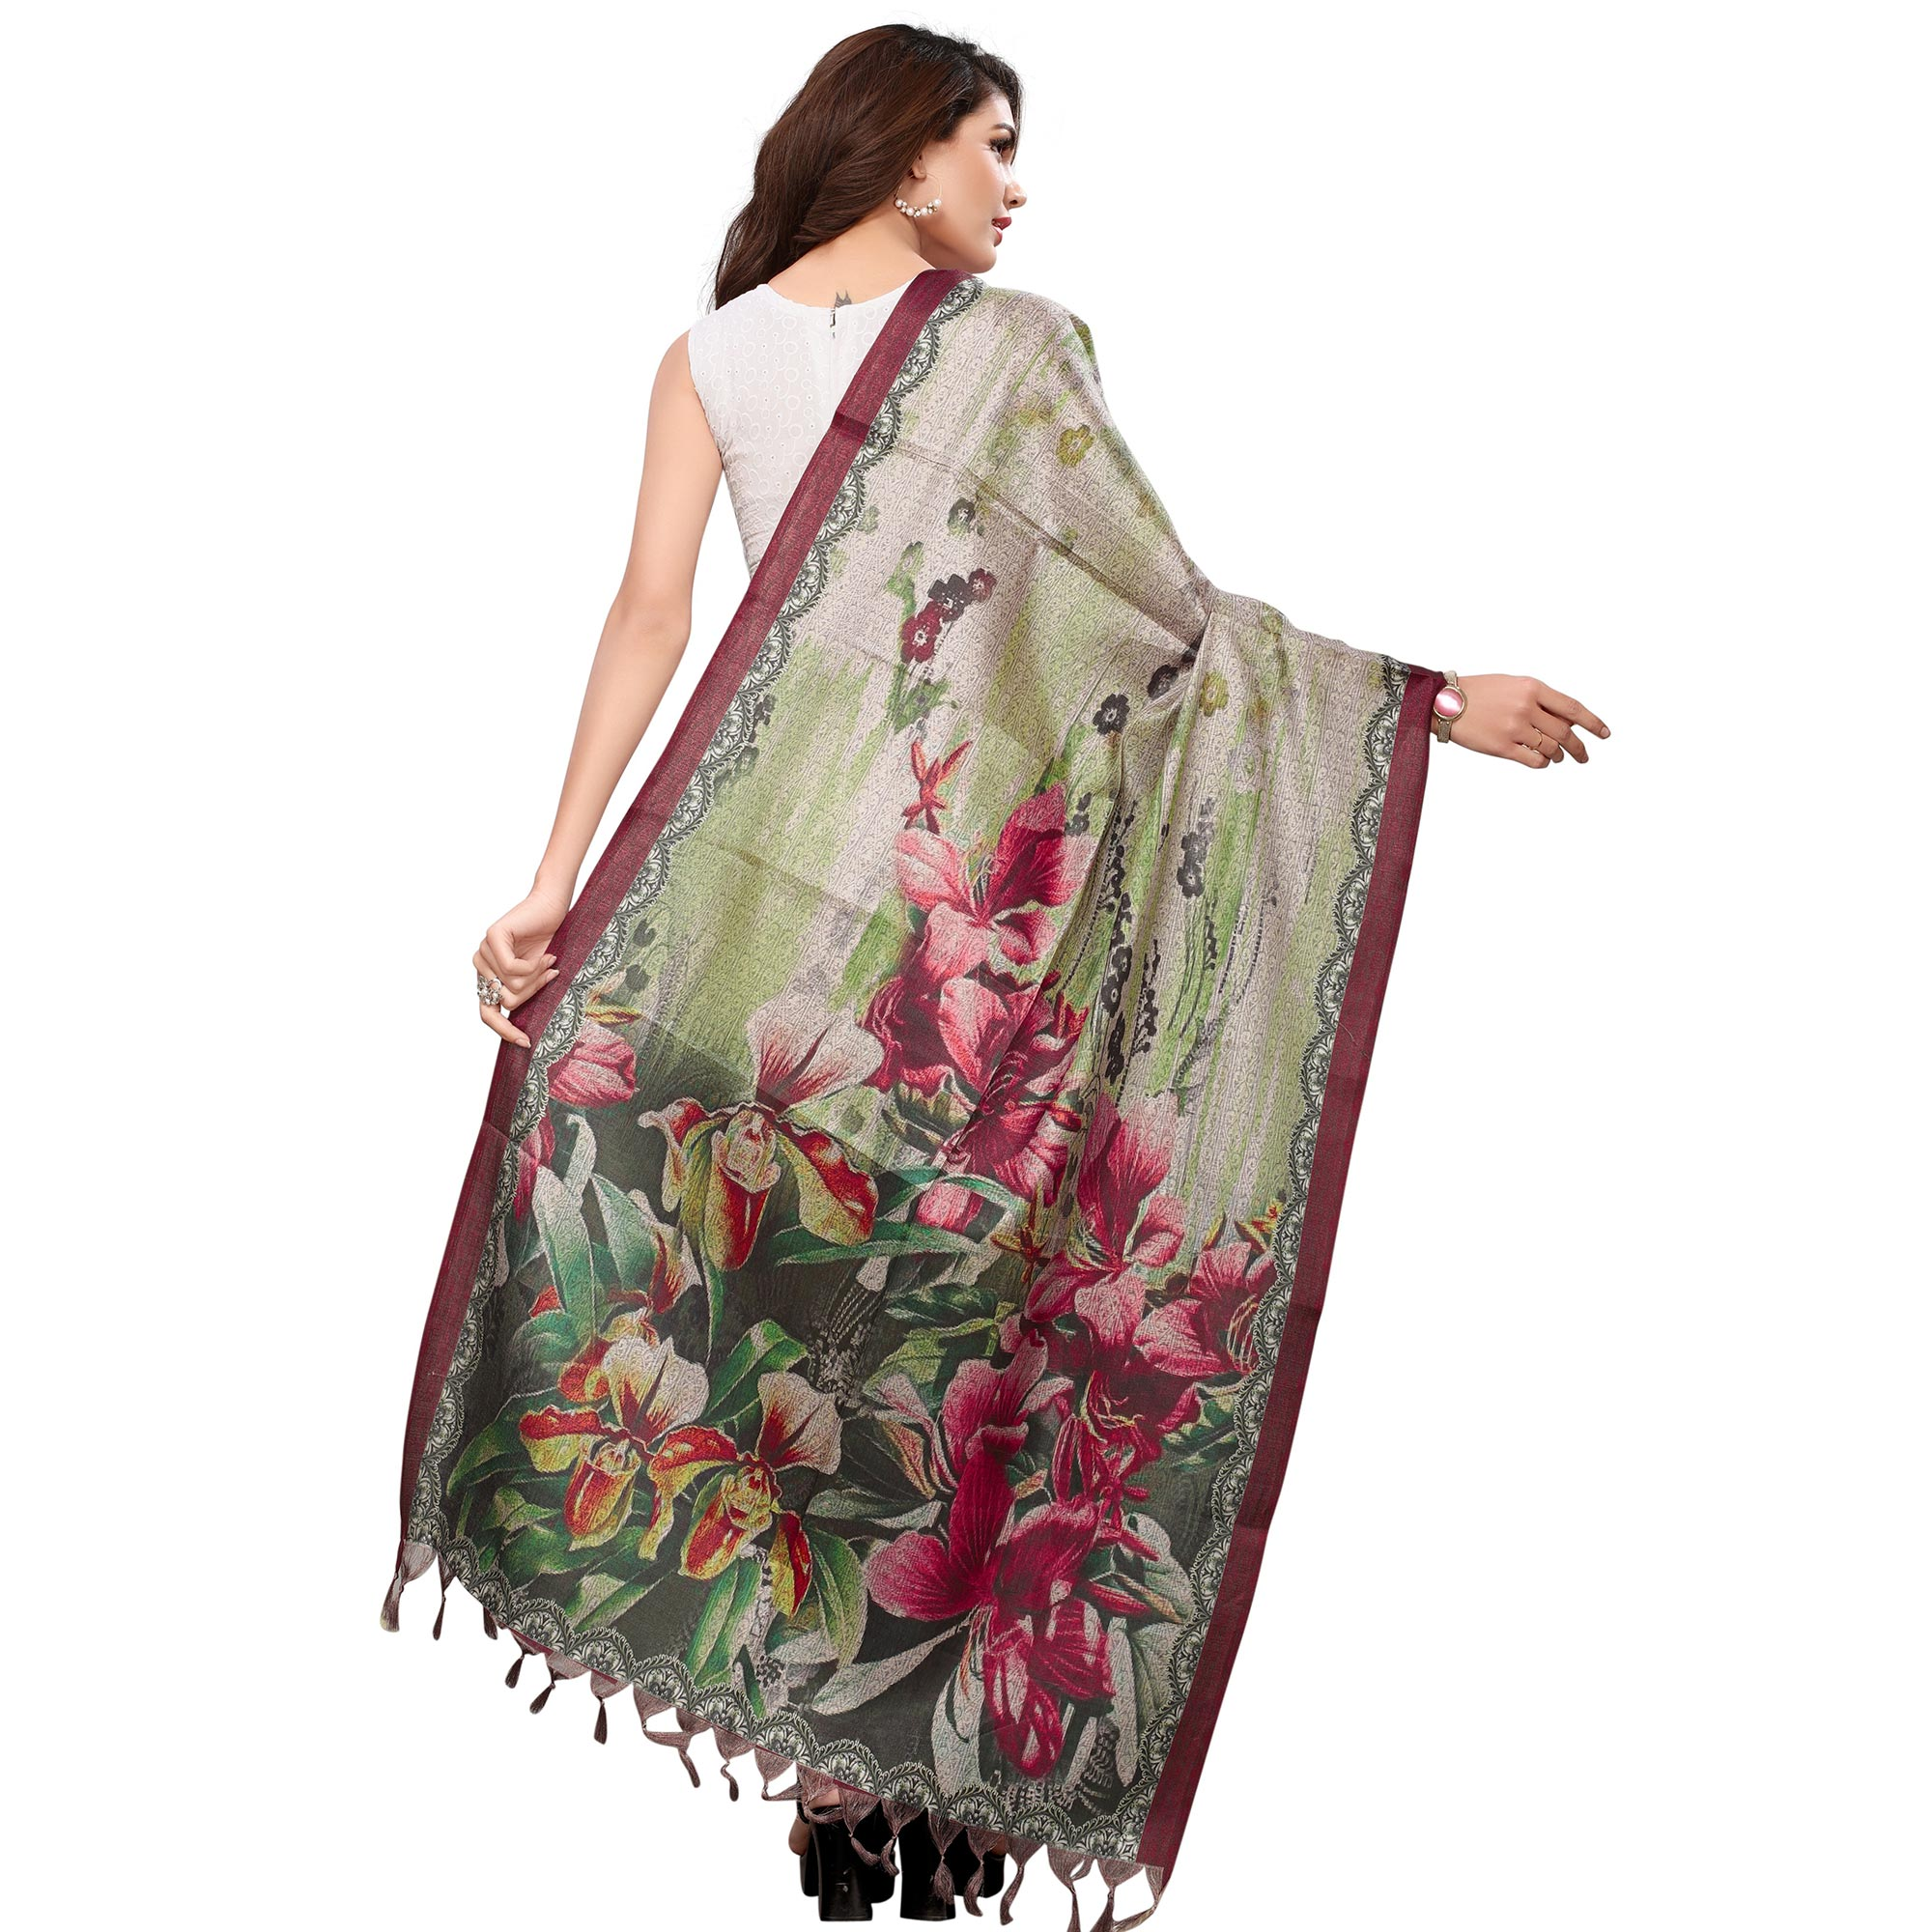 Ravishing Beige-Green Colored Casual Wear Digital Printed Khadi Silk Dupatta